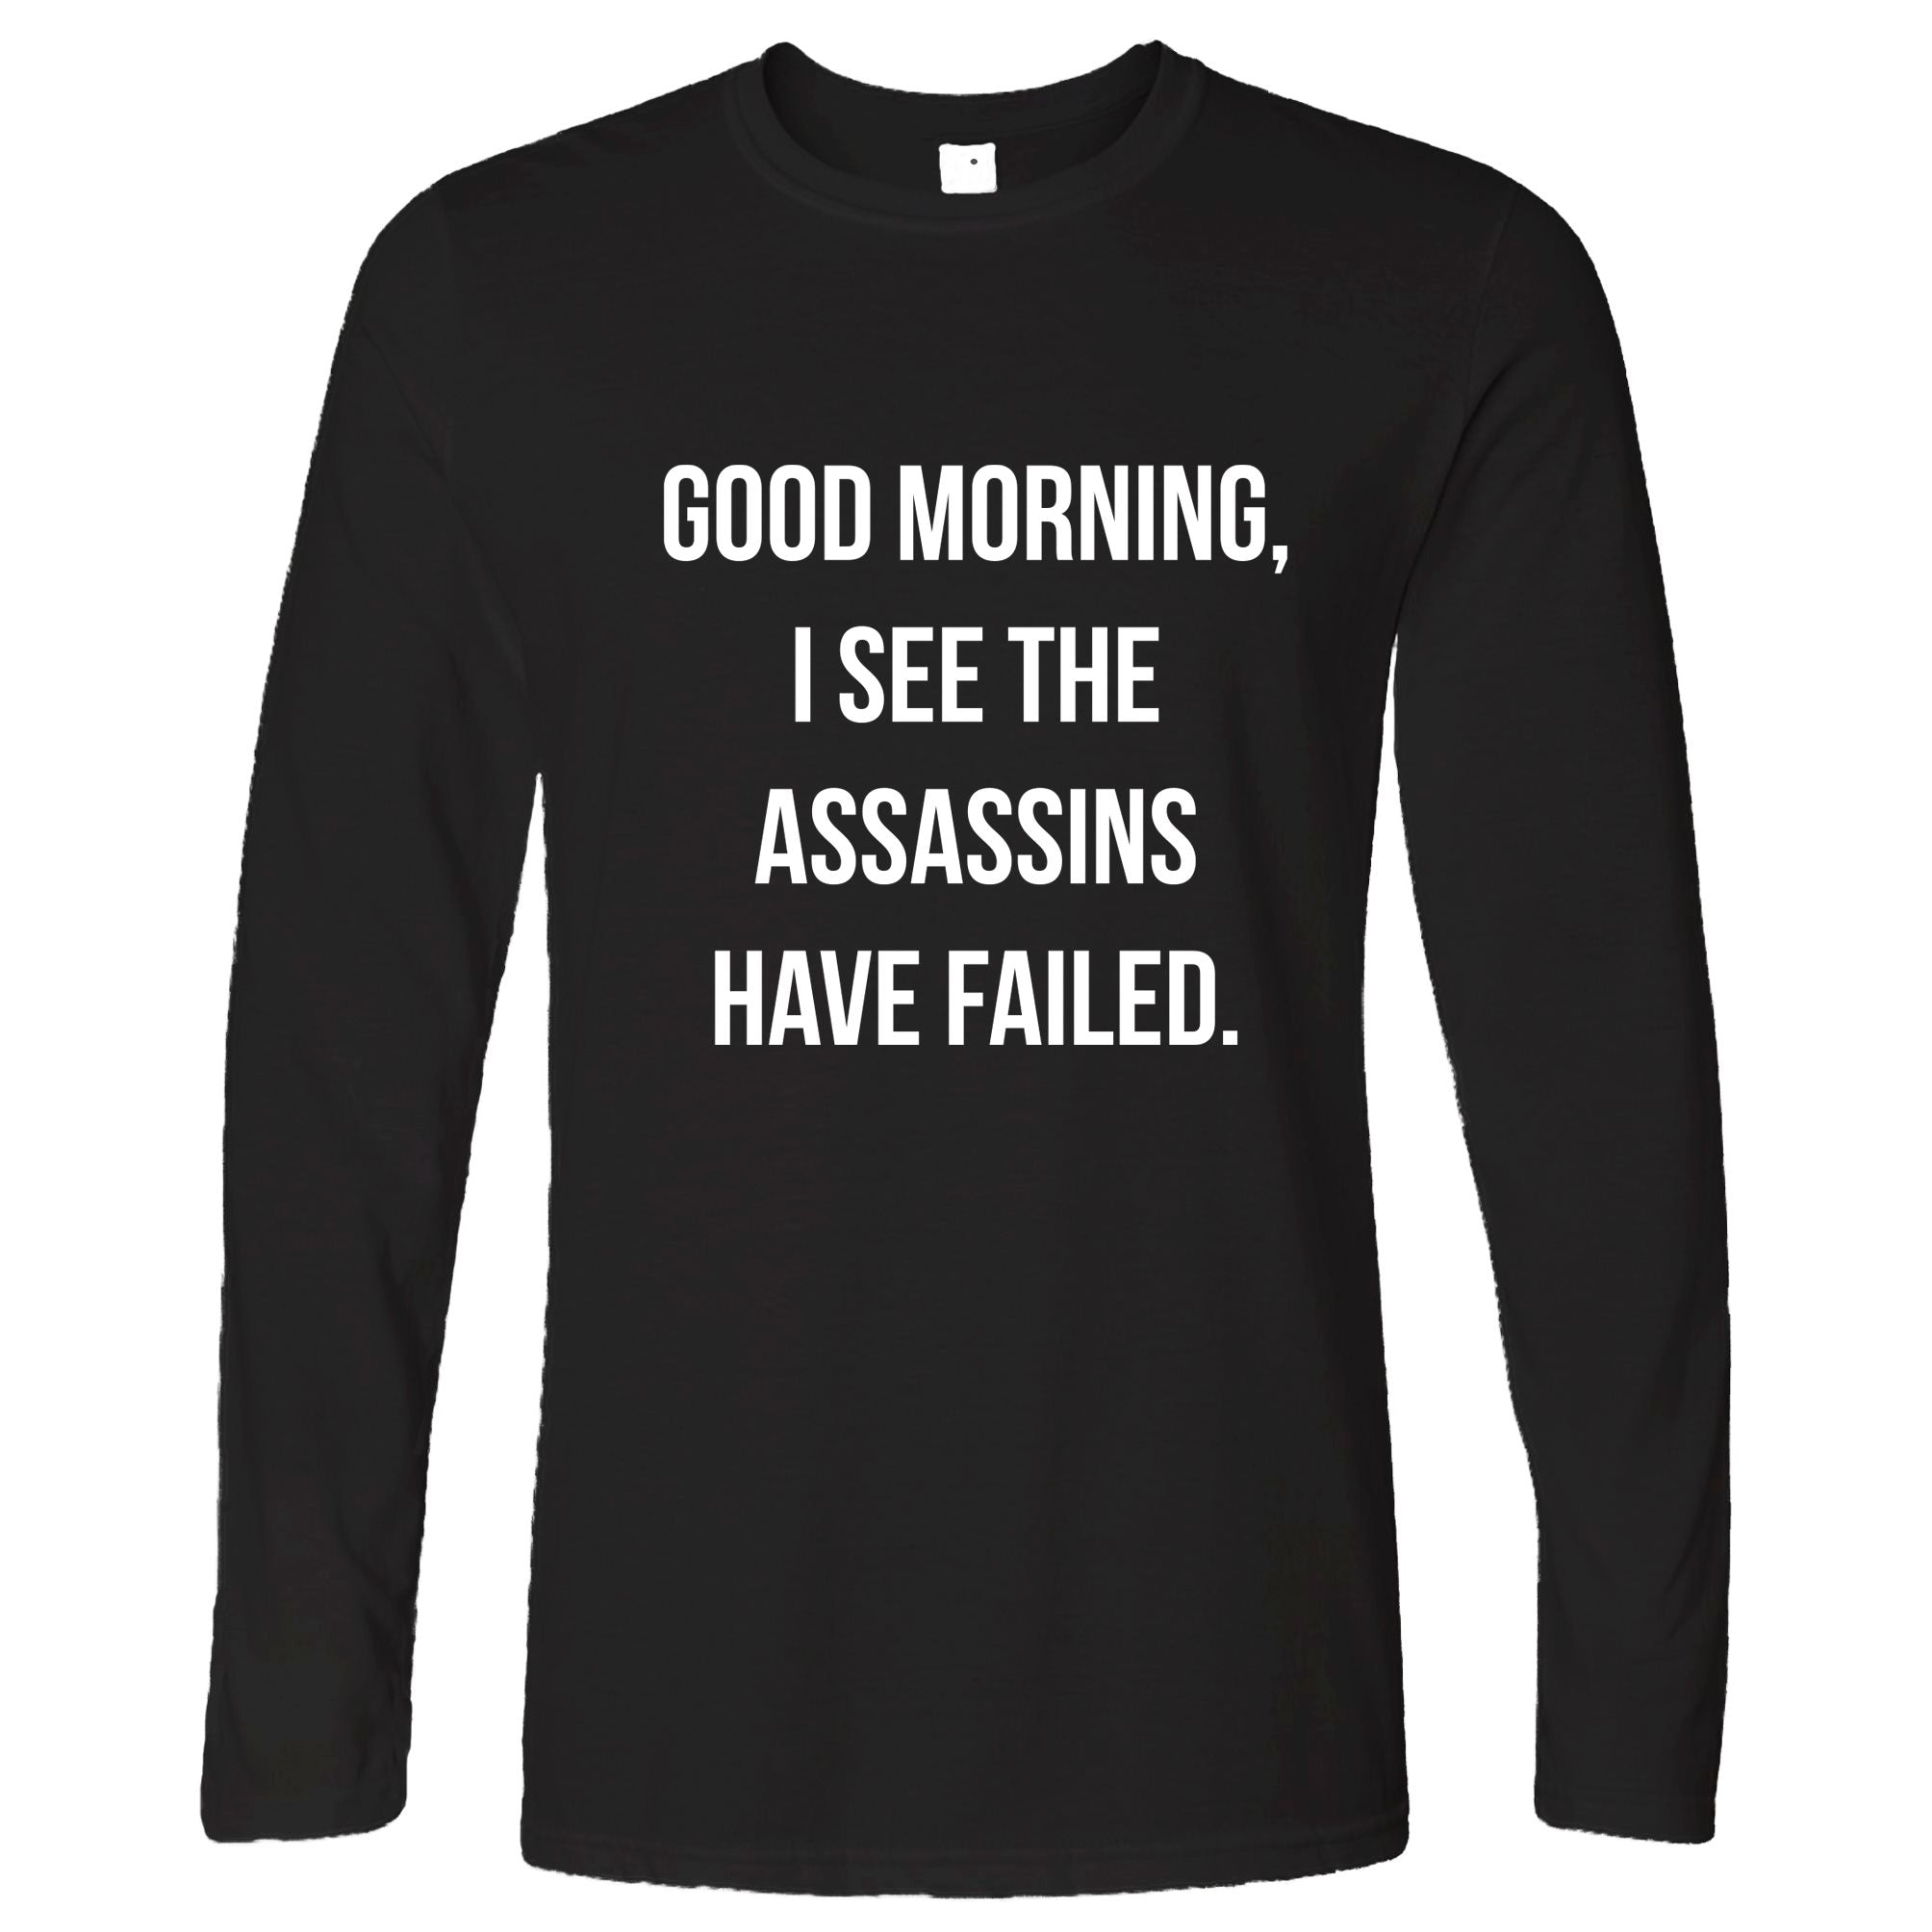 Novelty Long Sleeve I See The Assassins Have Failed Joke T-Shirt